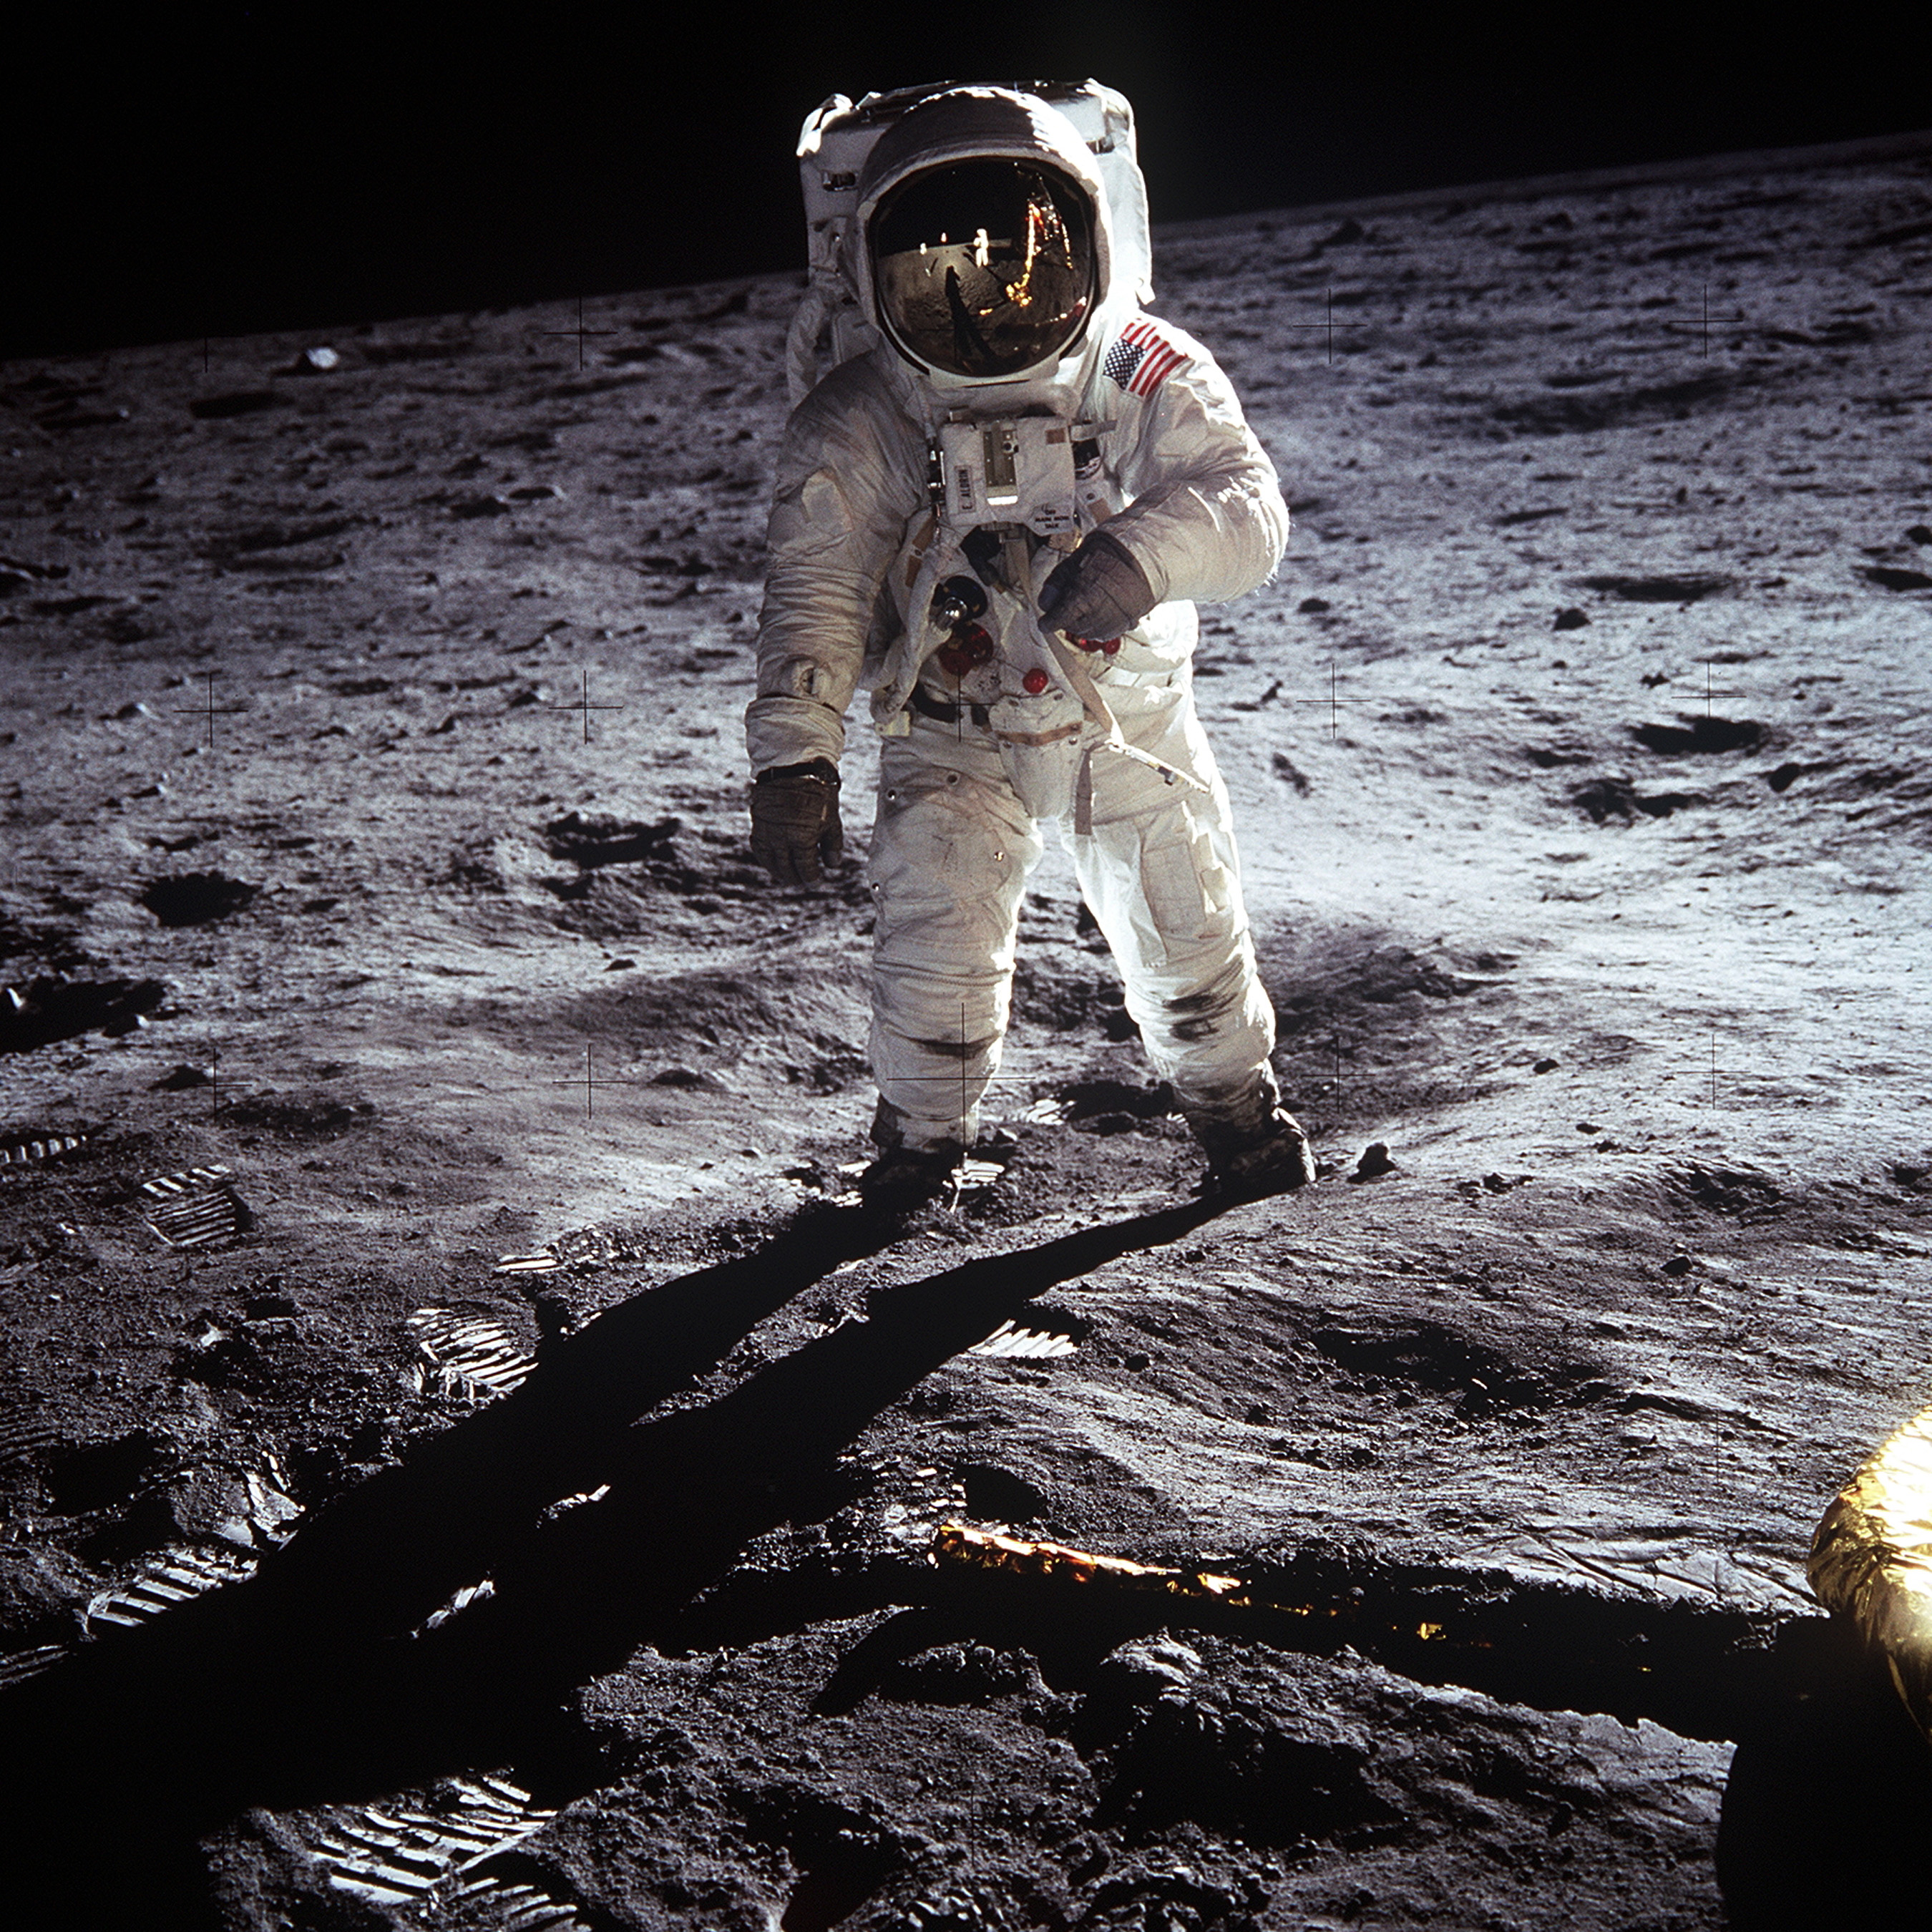 https://upload.wikimedia.org/wikipedia/commons/9/9c/Aldrin_Apollo_11.jpg